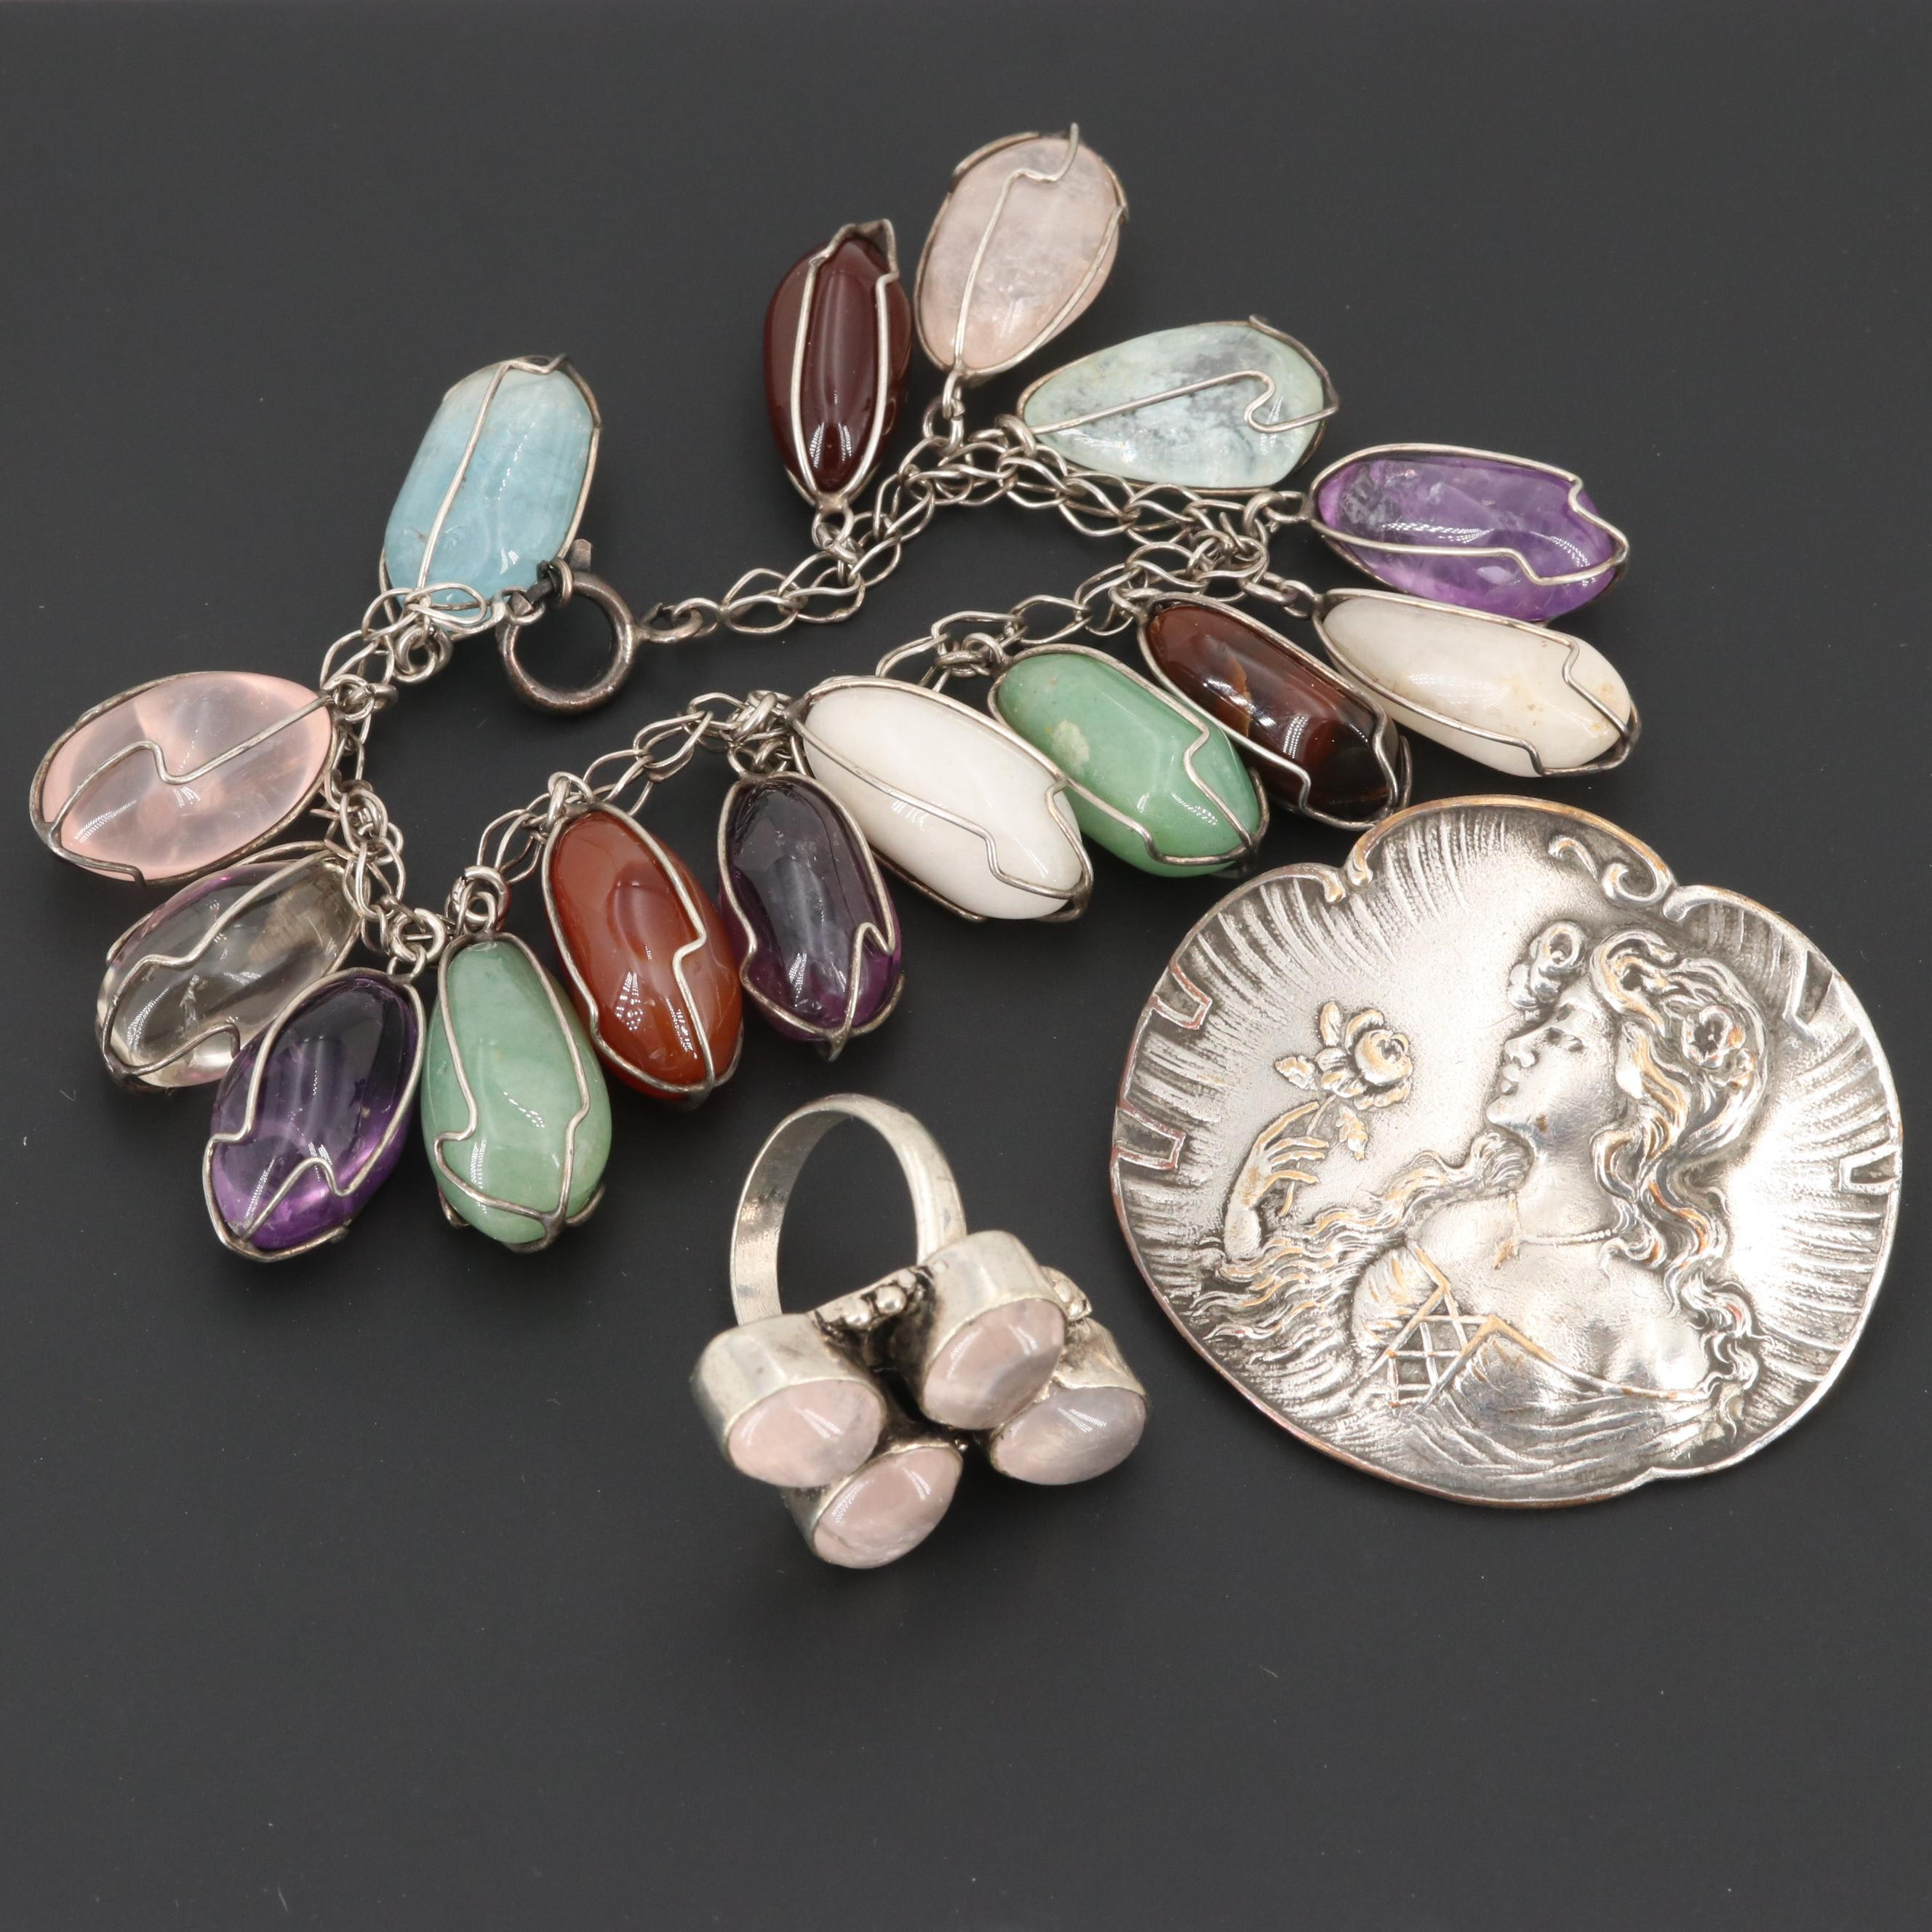 Sterling Silver Jewelry Including Aventurine, Agate and Art Nouveau Brooch